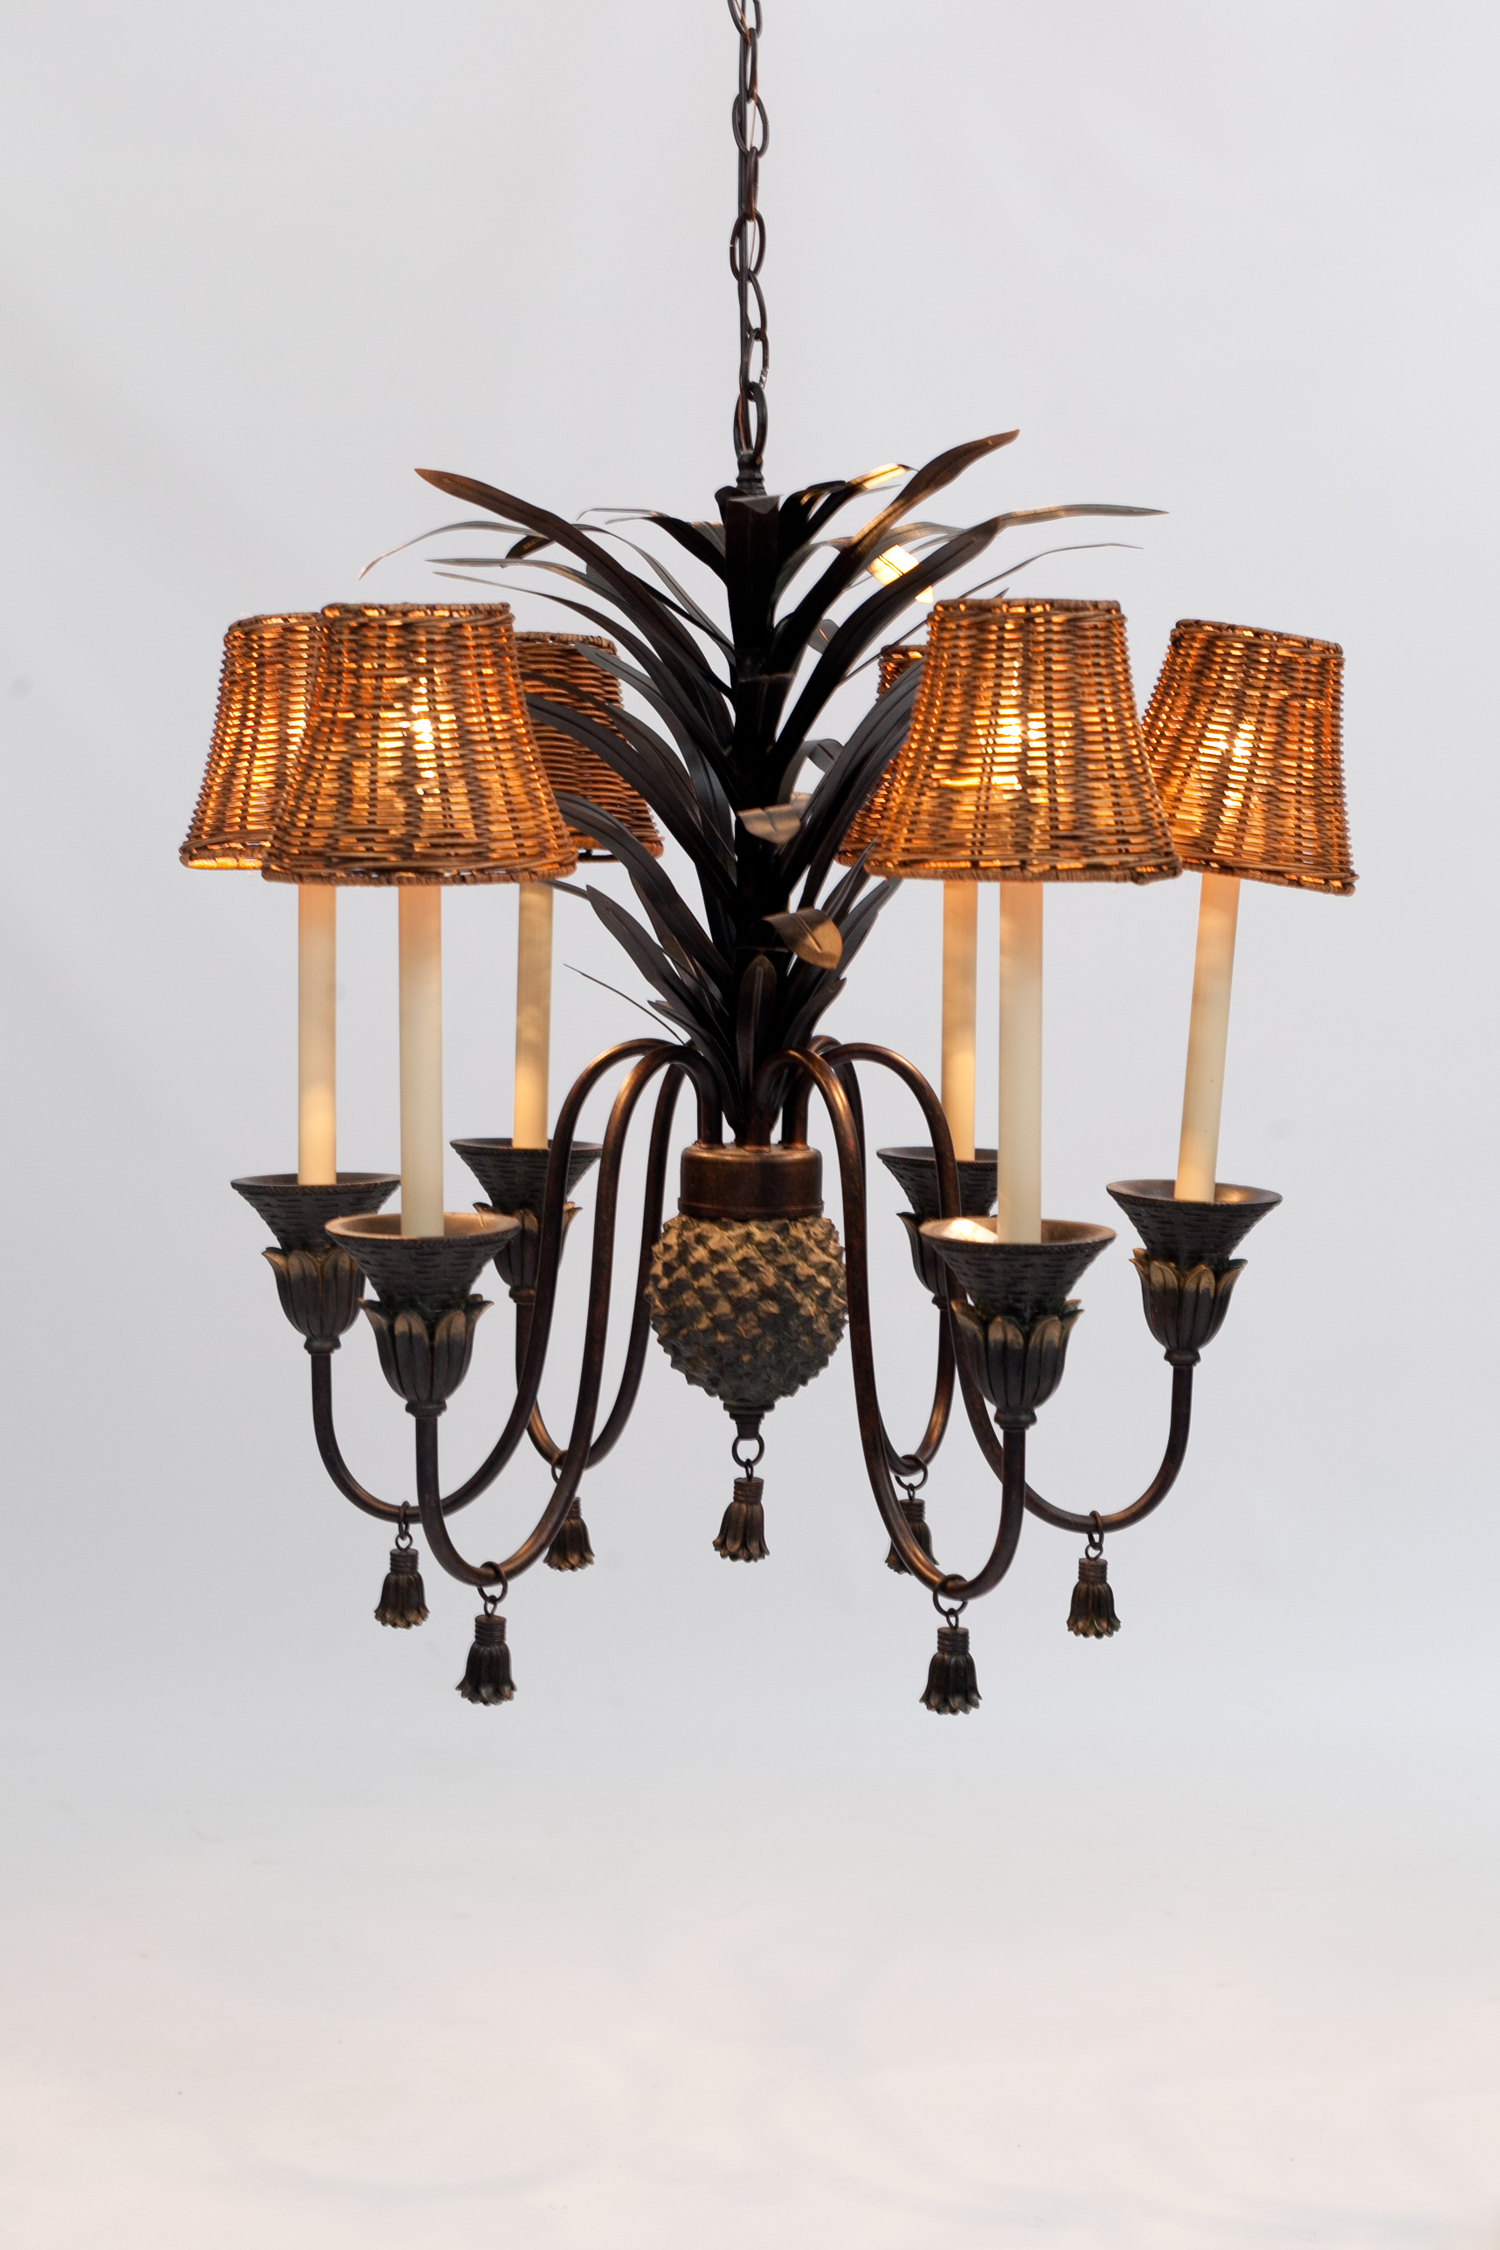 Pineapple Chandelier with Tassles and Woven Shades — Casa Boheme